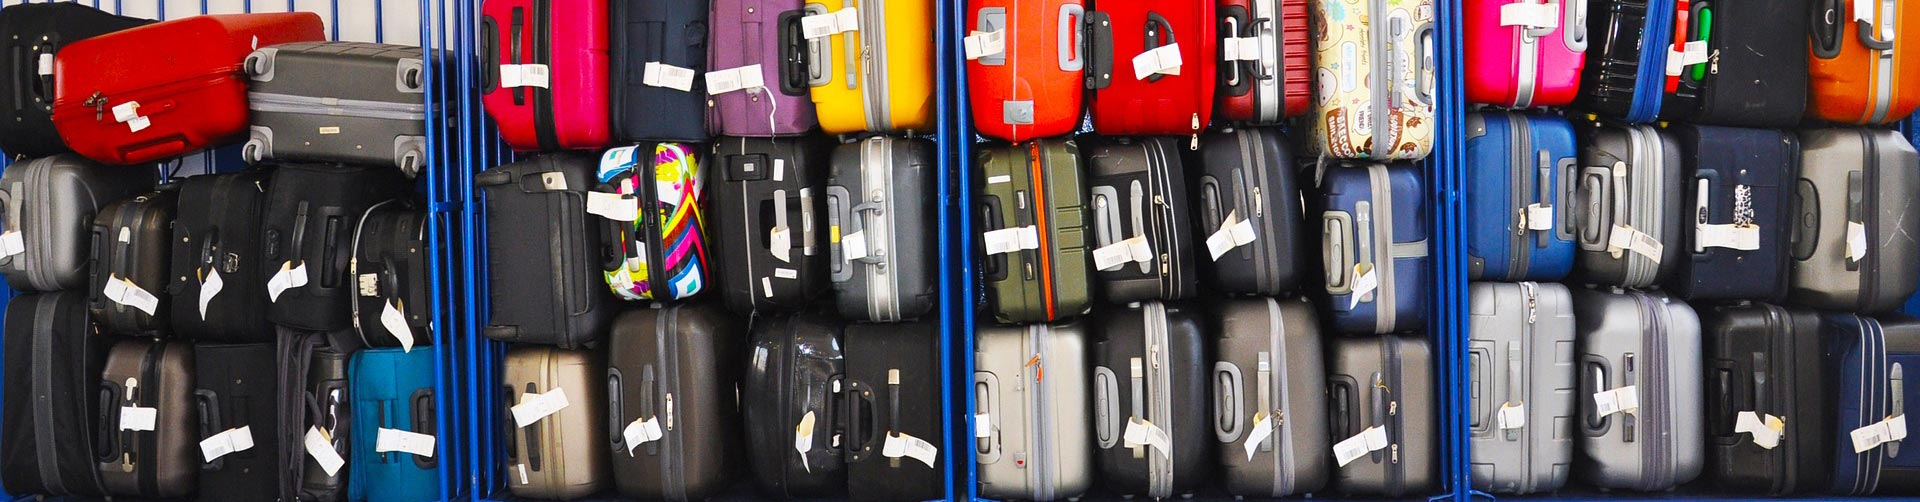 5 Best Luggage Sets for Your Next Vacation